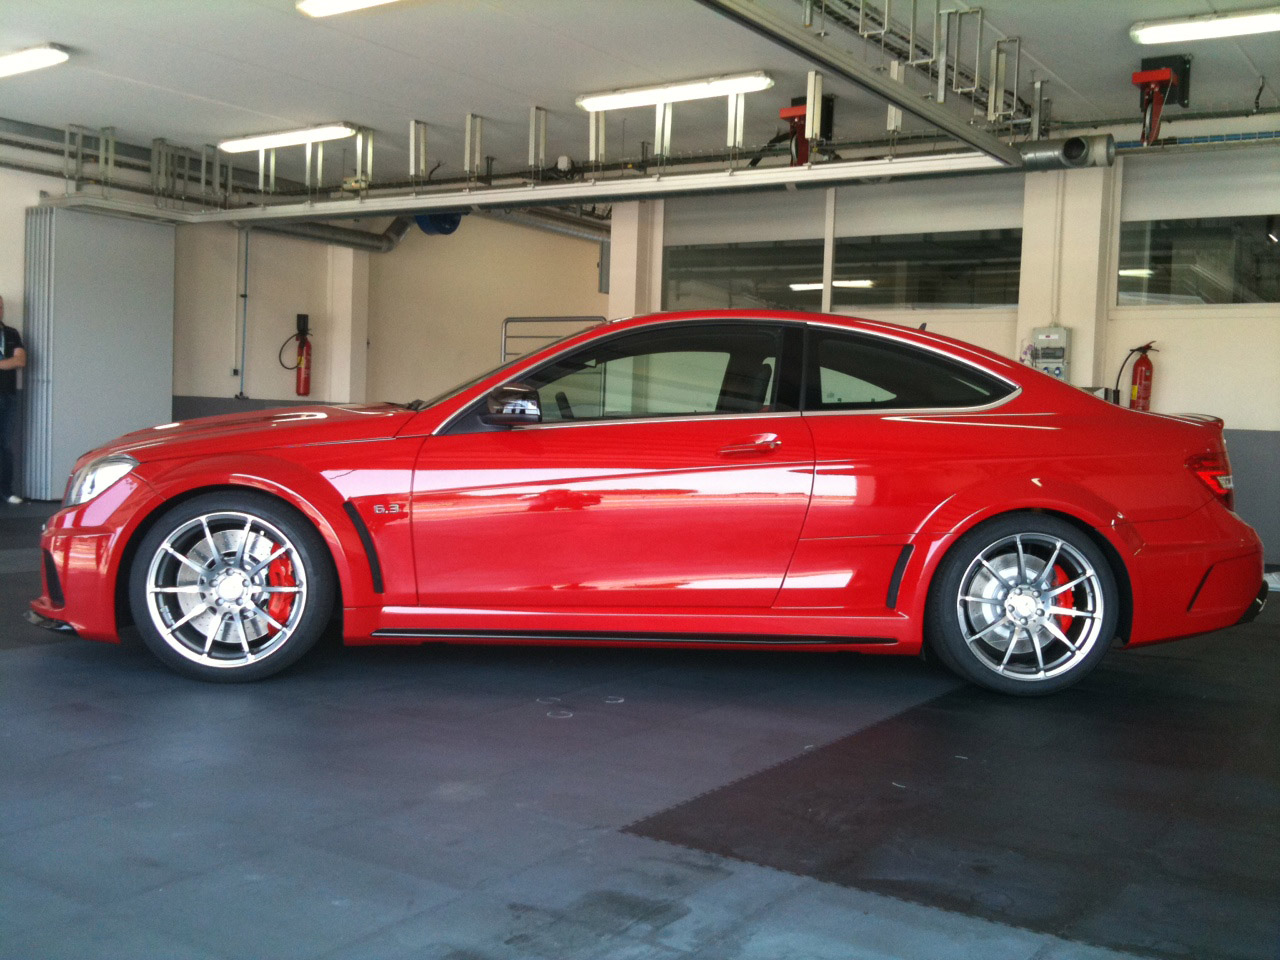 new 2012 mercedes c63 amg black series coup exposed. Black Bedroom Furniture Sets. Home Design Ideas